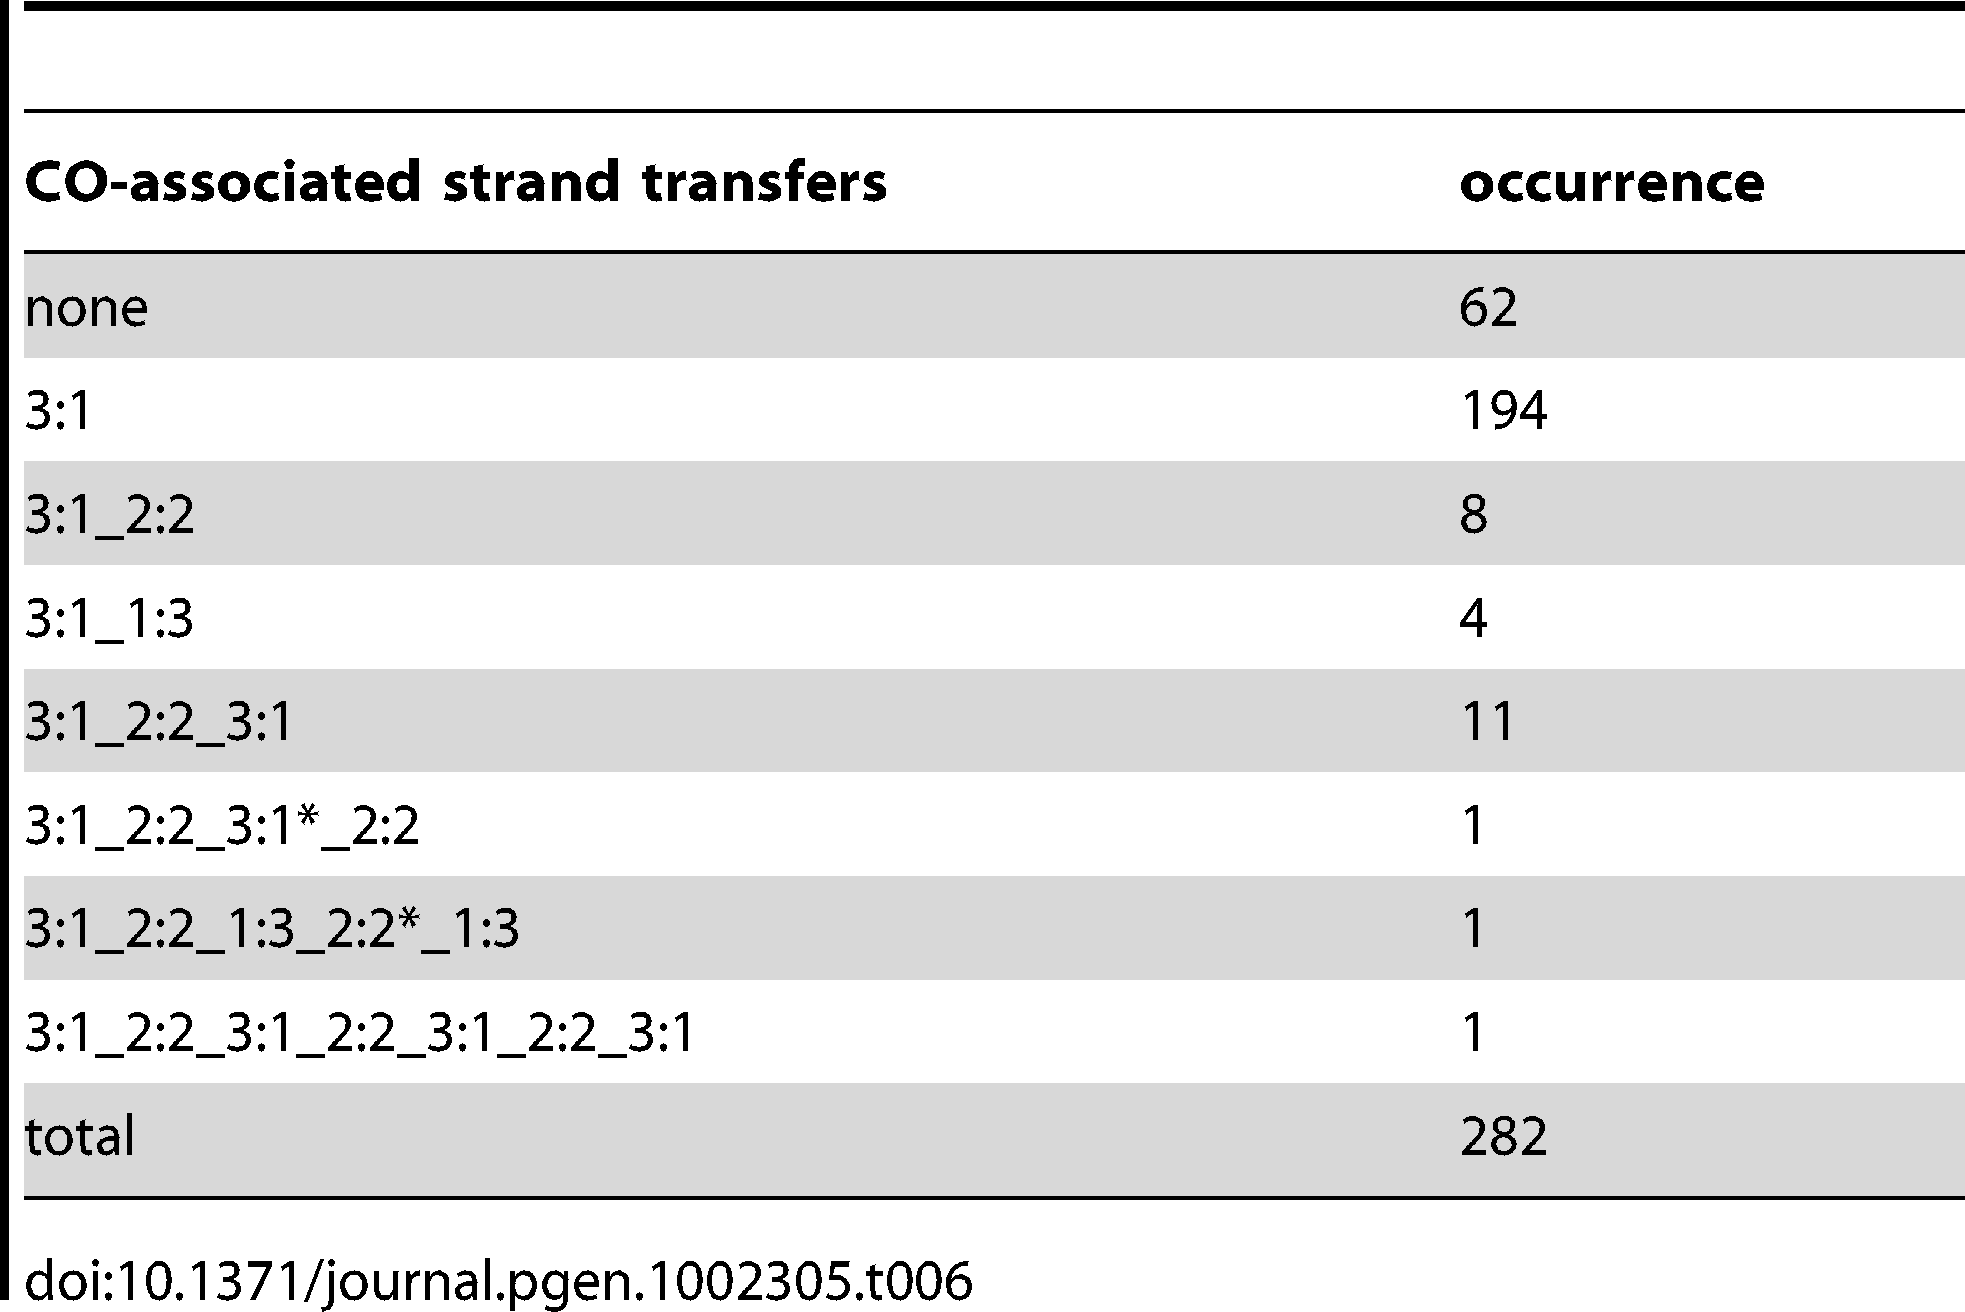 CO-associated strand transfers in the presence of Msh2.